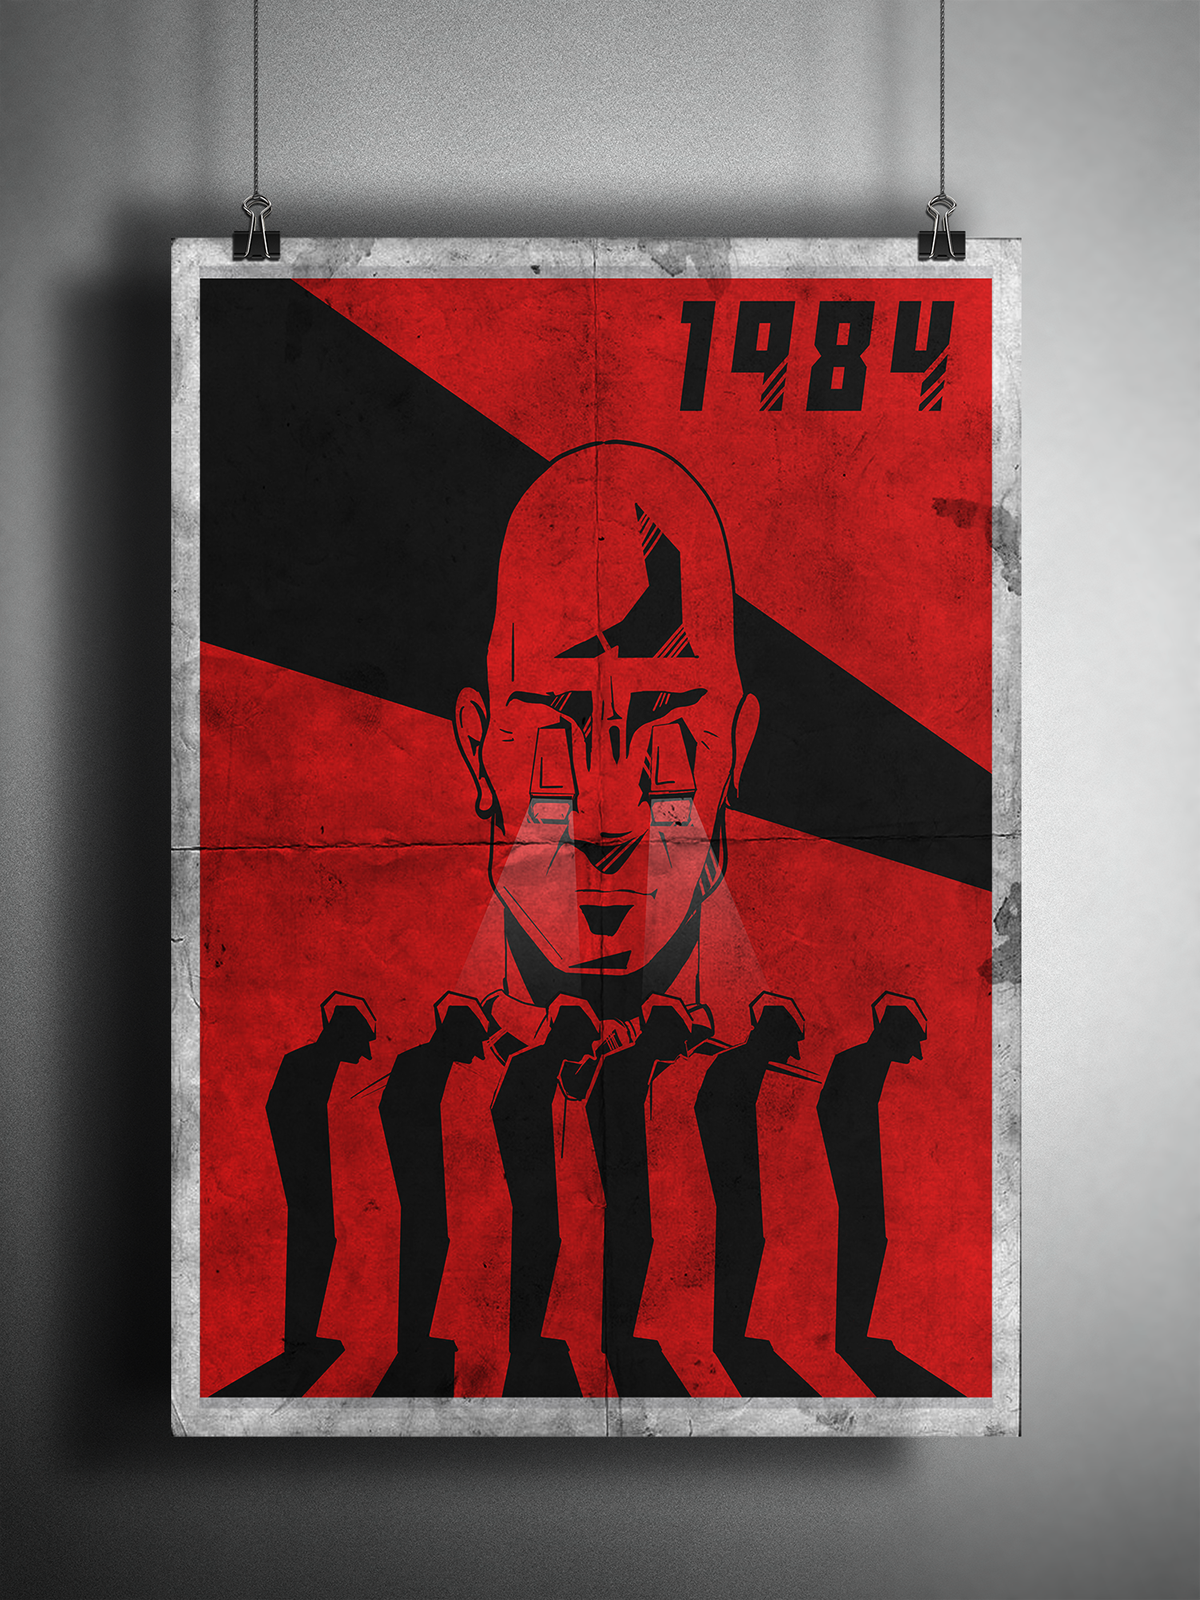 1984 - Orwell George Orwell poster Poster Design graphic design  book design book cover big brother is watching you